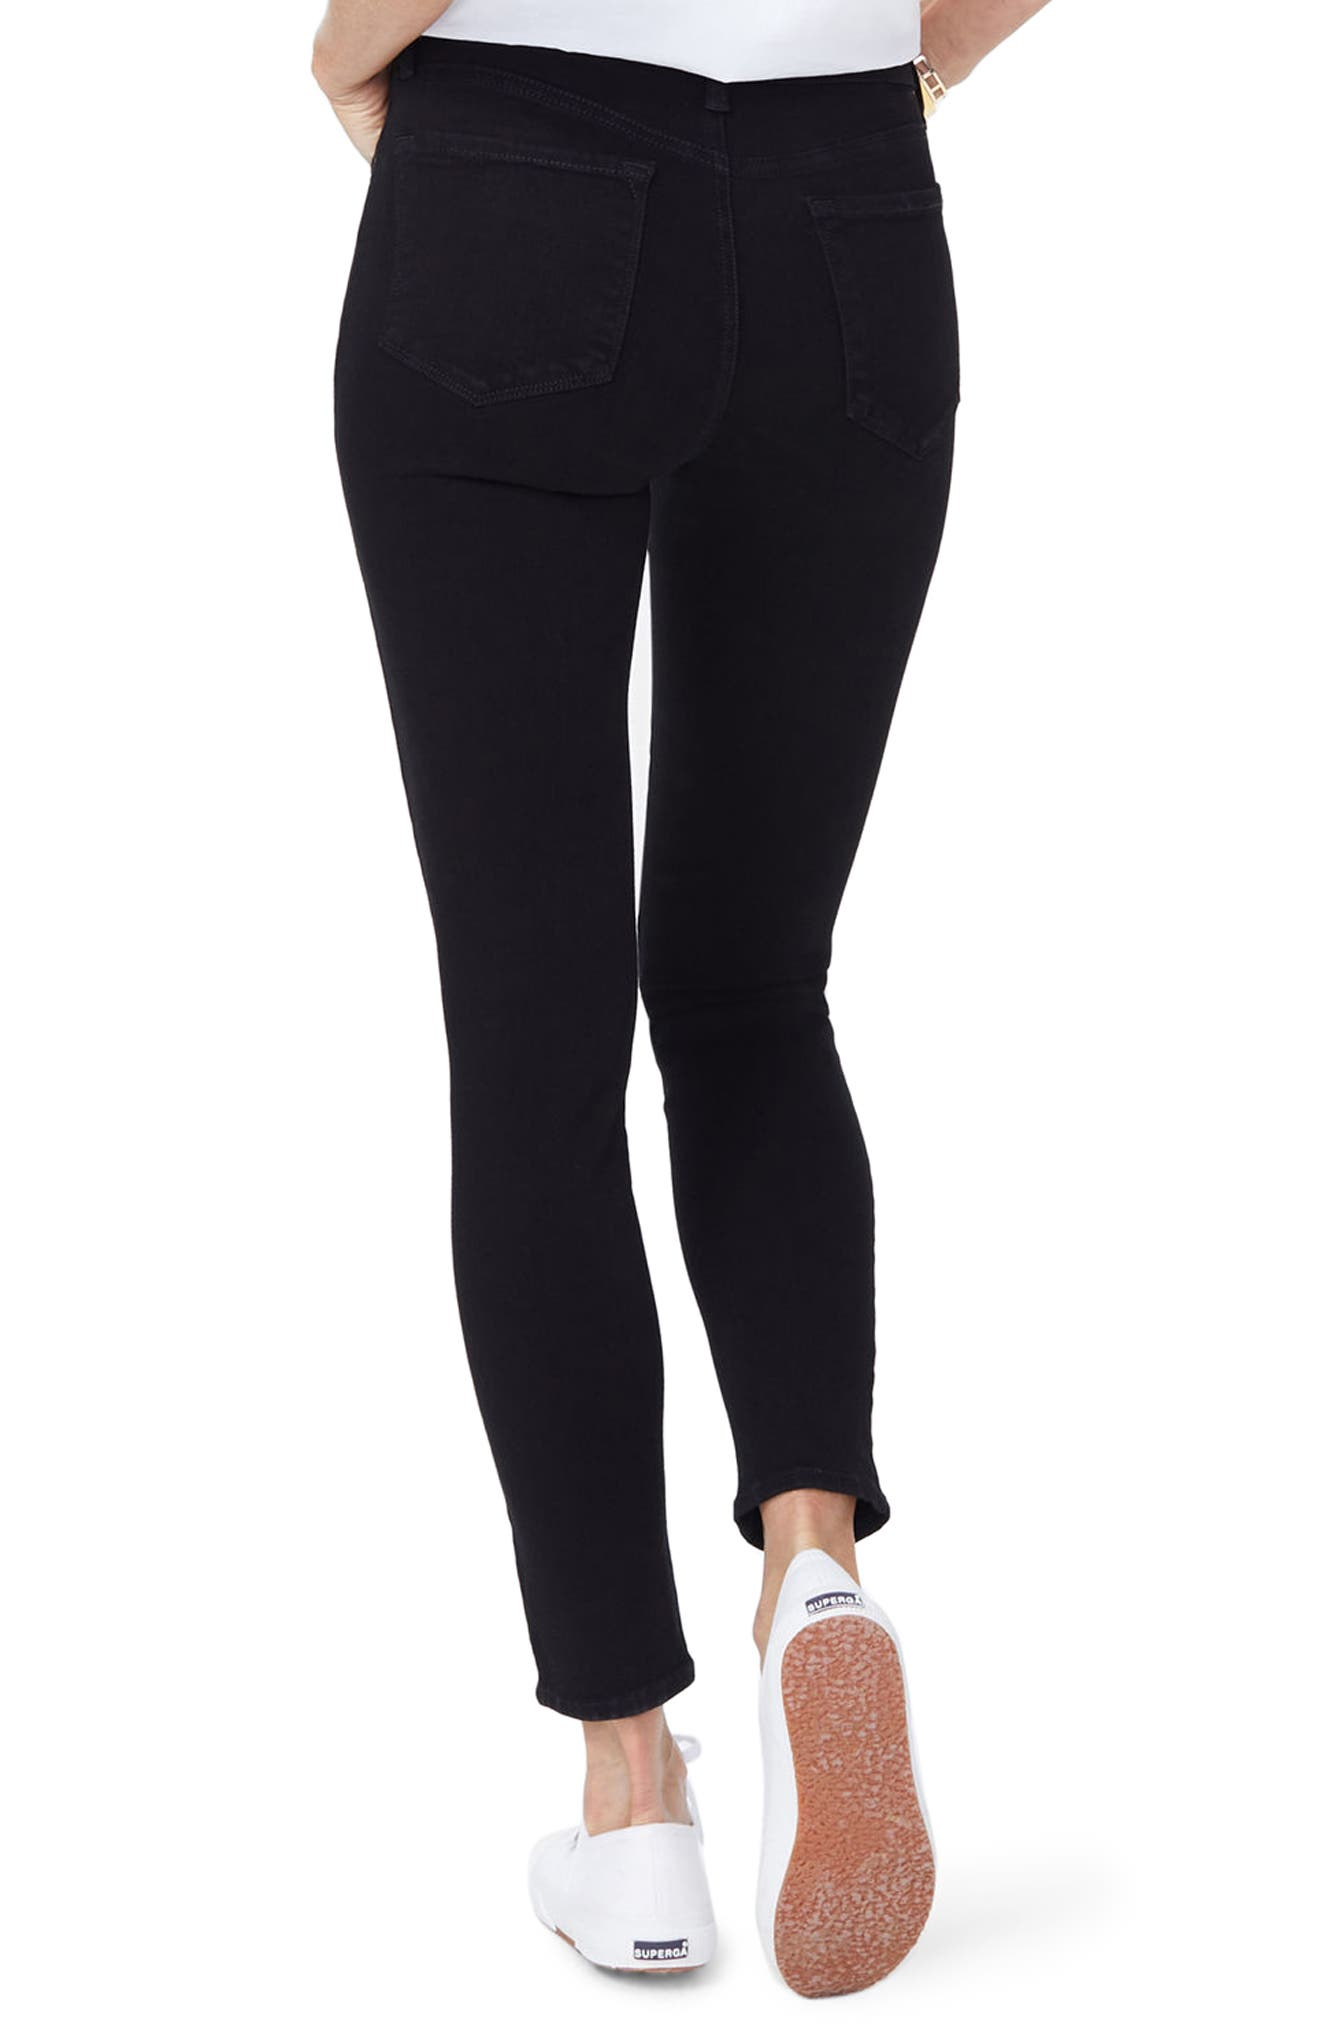 Ami Stretch Super Skinny Jeans,                             Alternate thumbnail 2, color,                             001